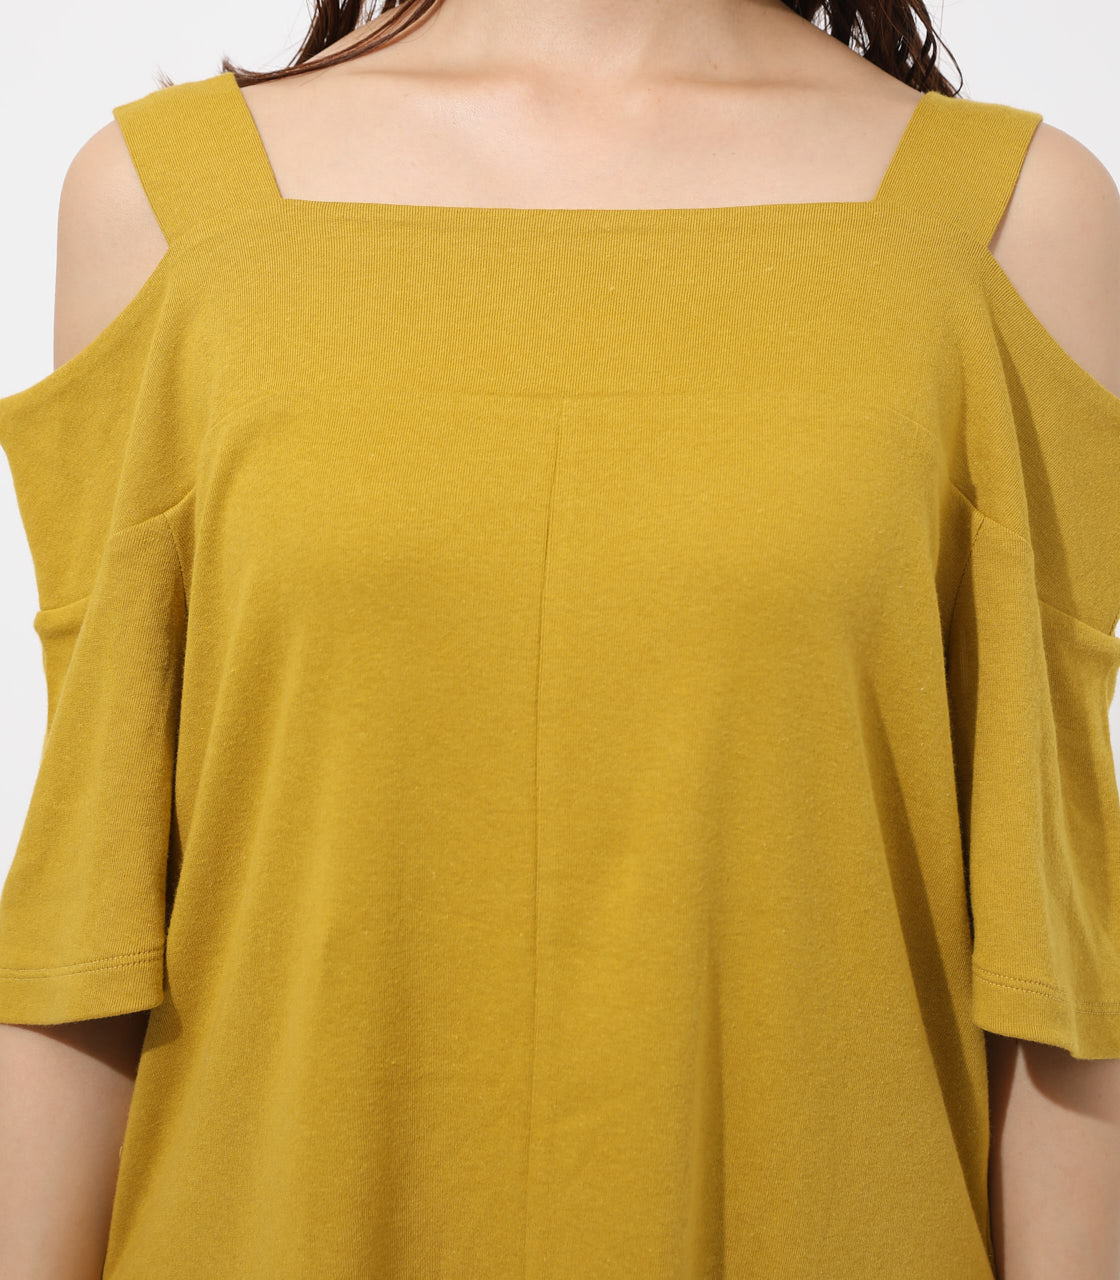 WIDE STRAP OPEN SHOULDER TOPS 詳細画像 D/YEL 7